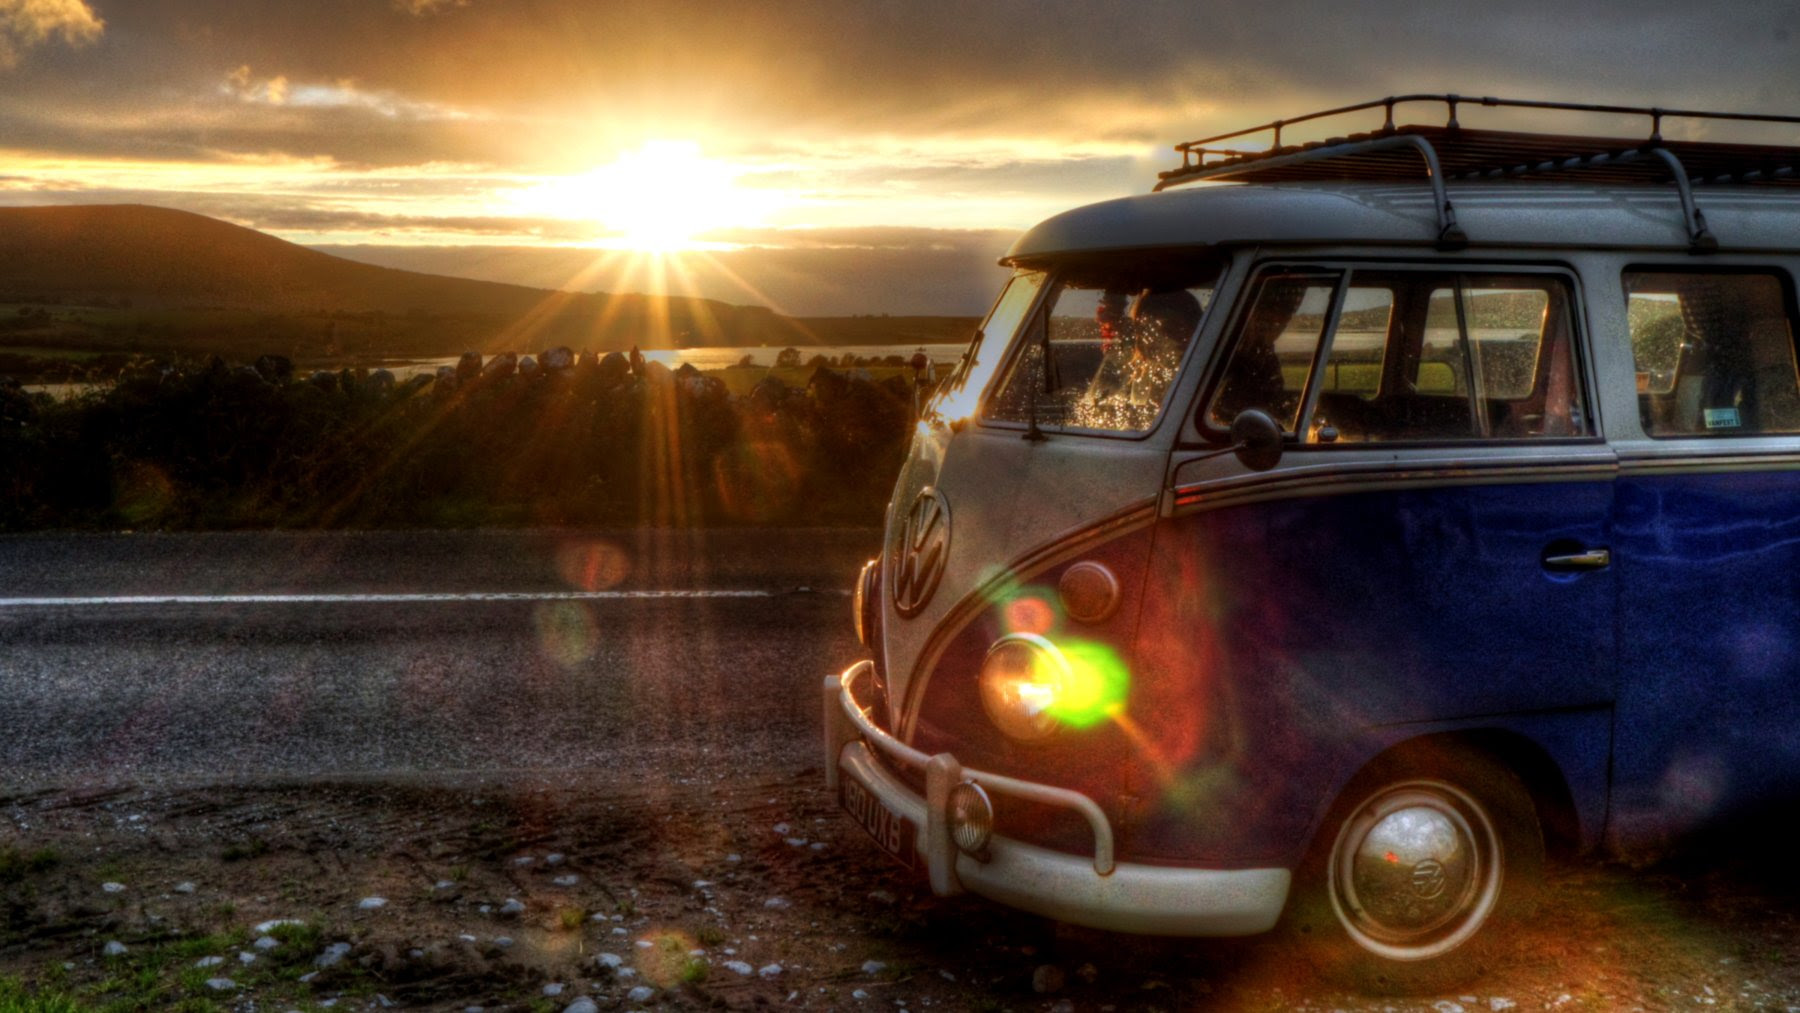 Sunset Vw Combi Car Like Wallpapers